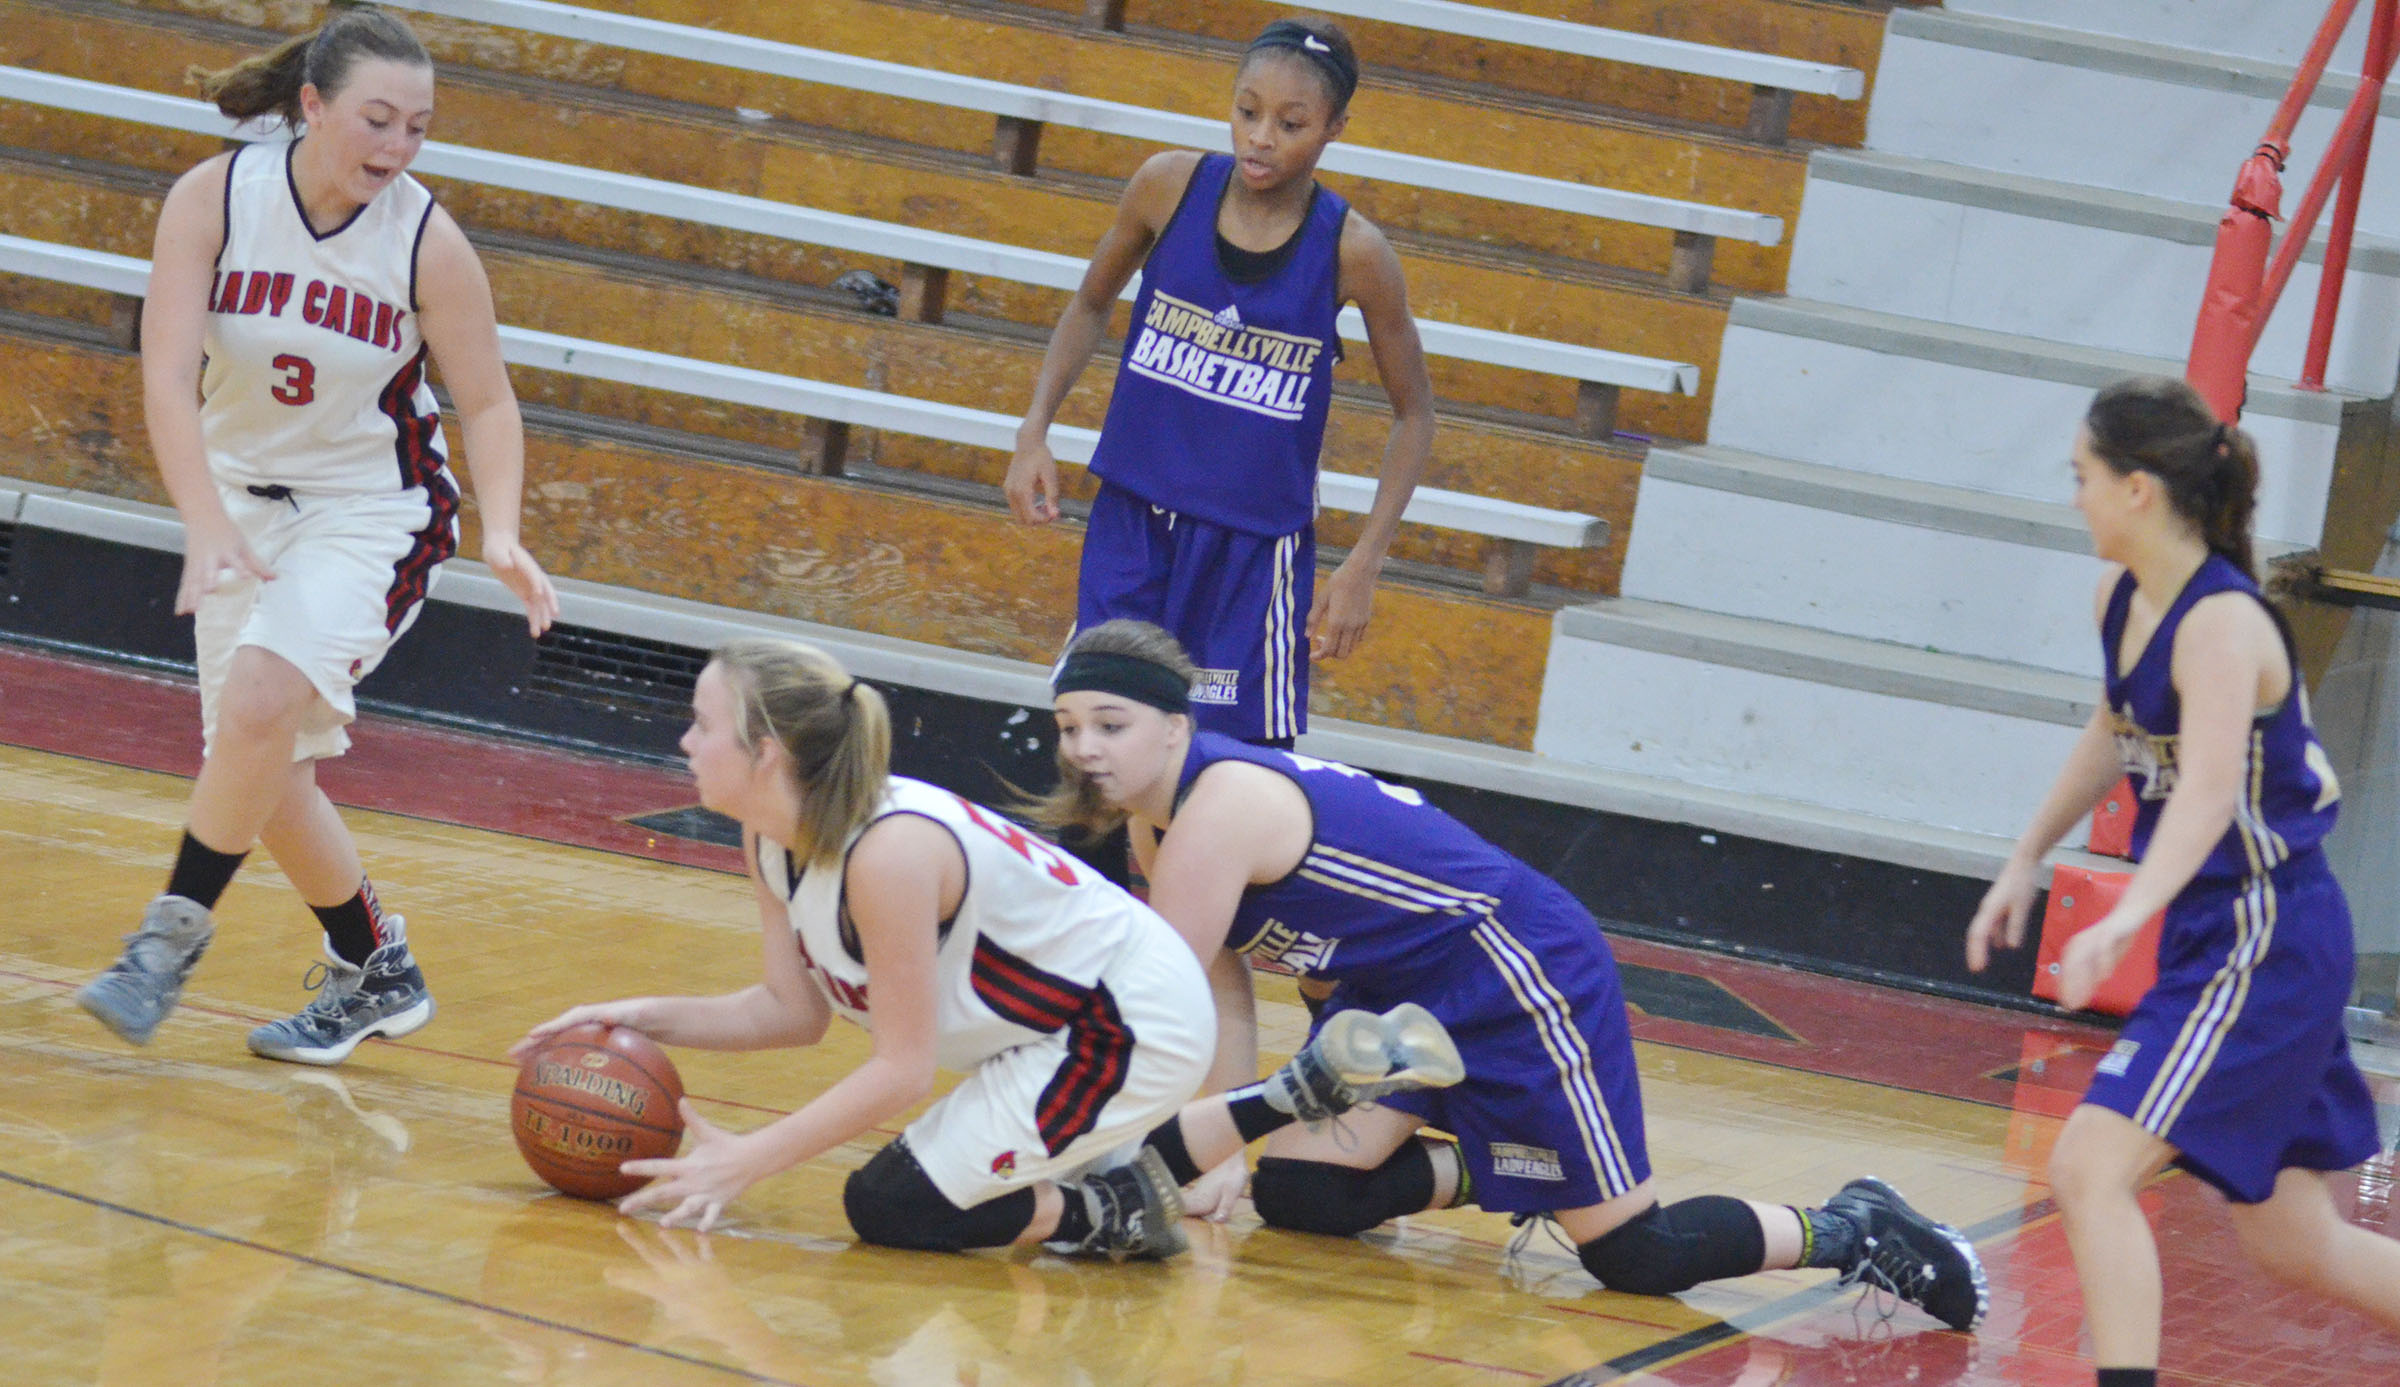 Campbellsville Middle School eighth-grader Kenzi Forbis battles for the ball.